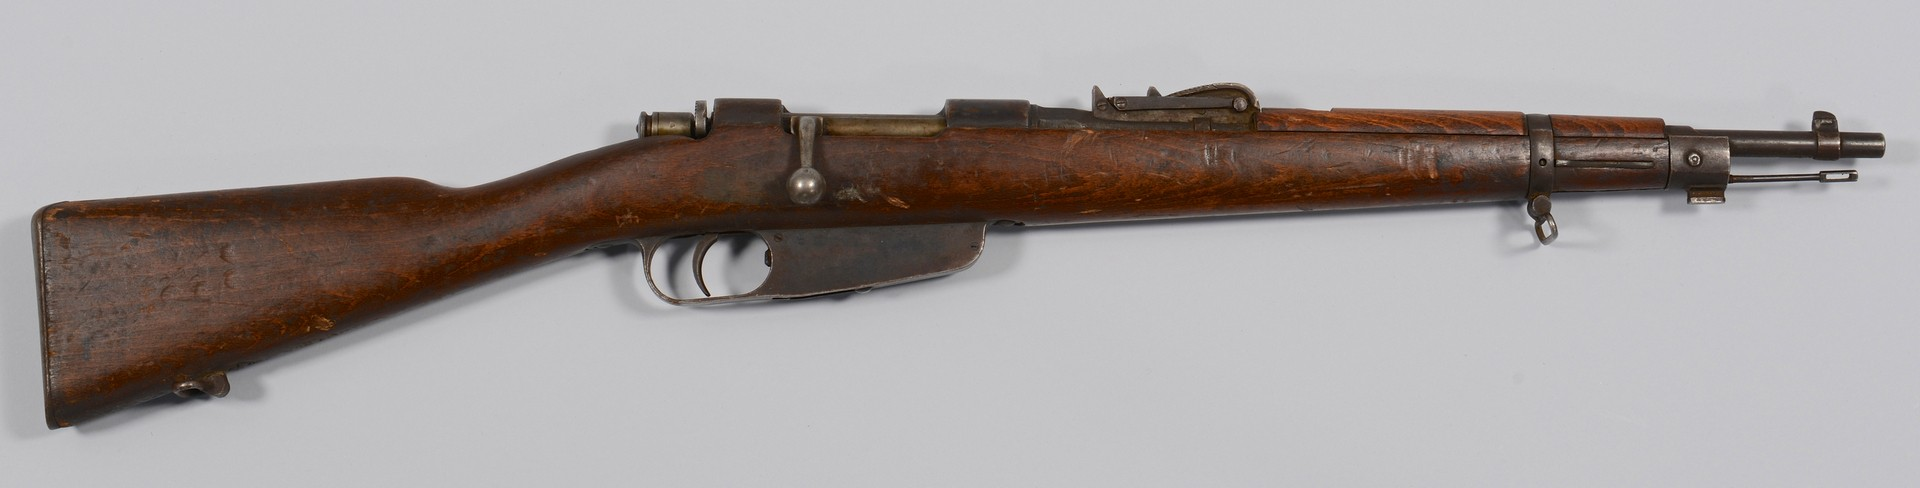 Lot 574: 2 Military bolt-action Rifles